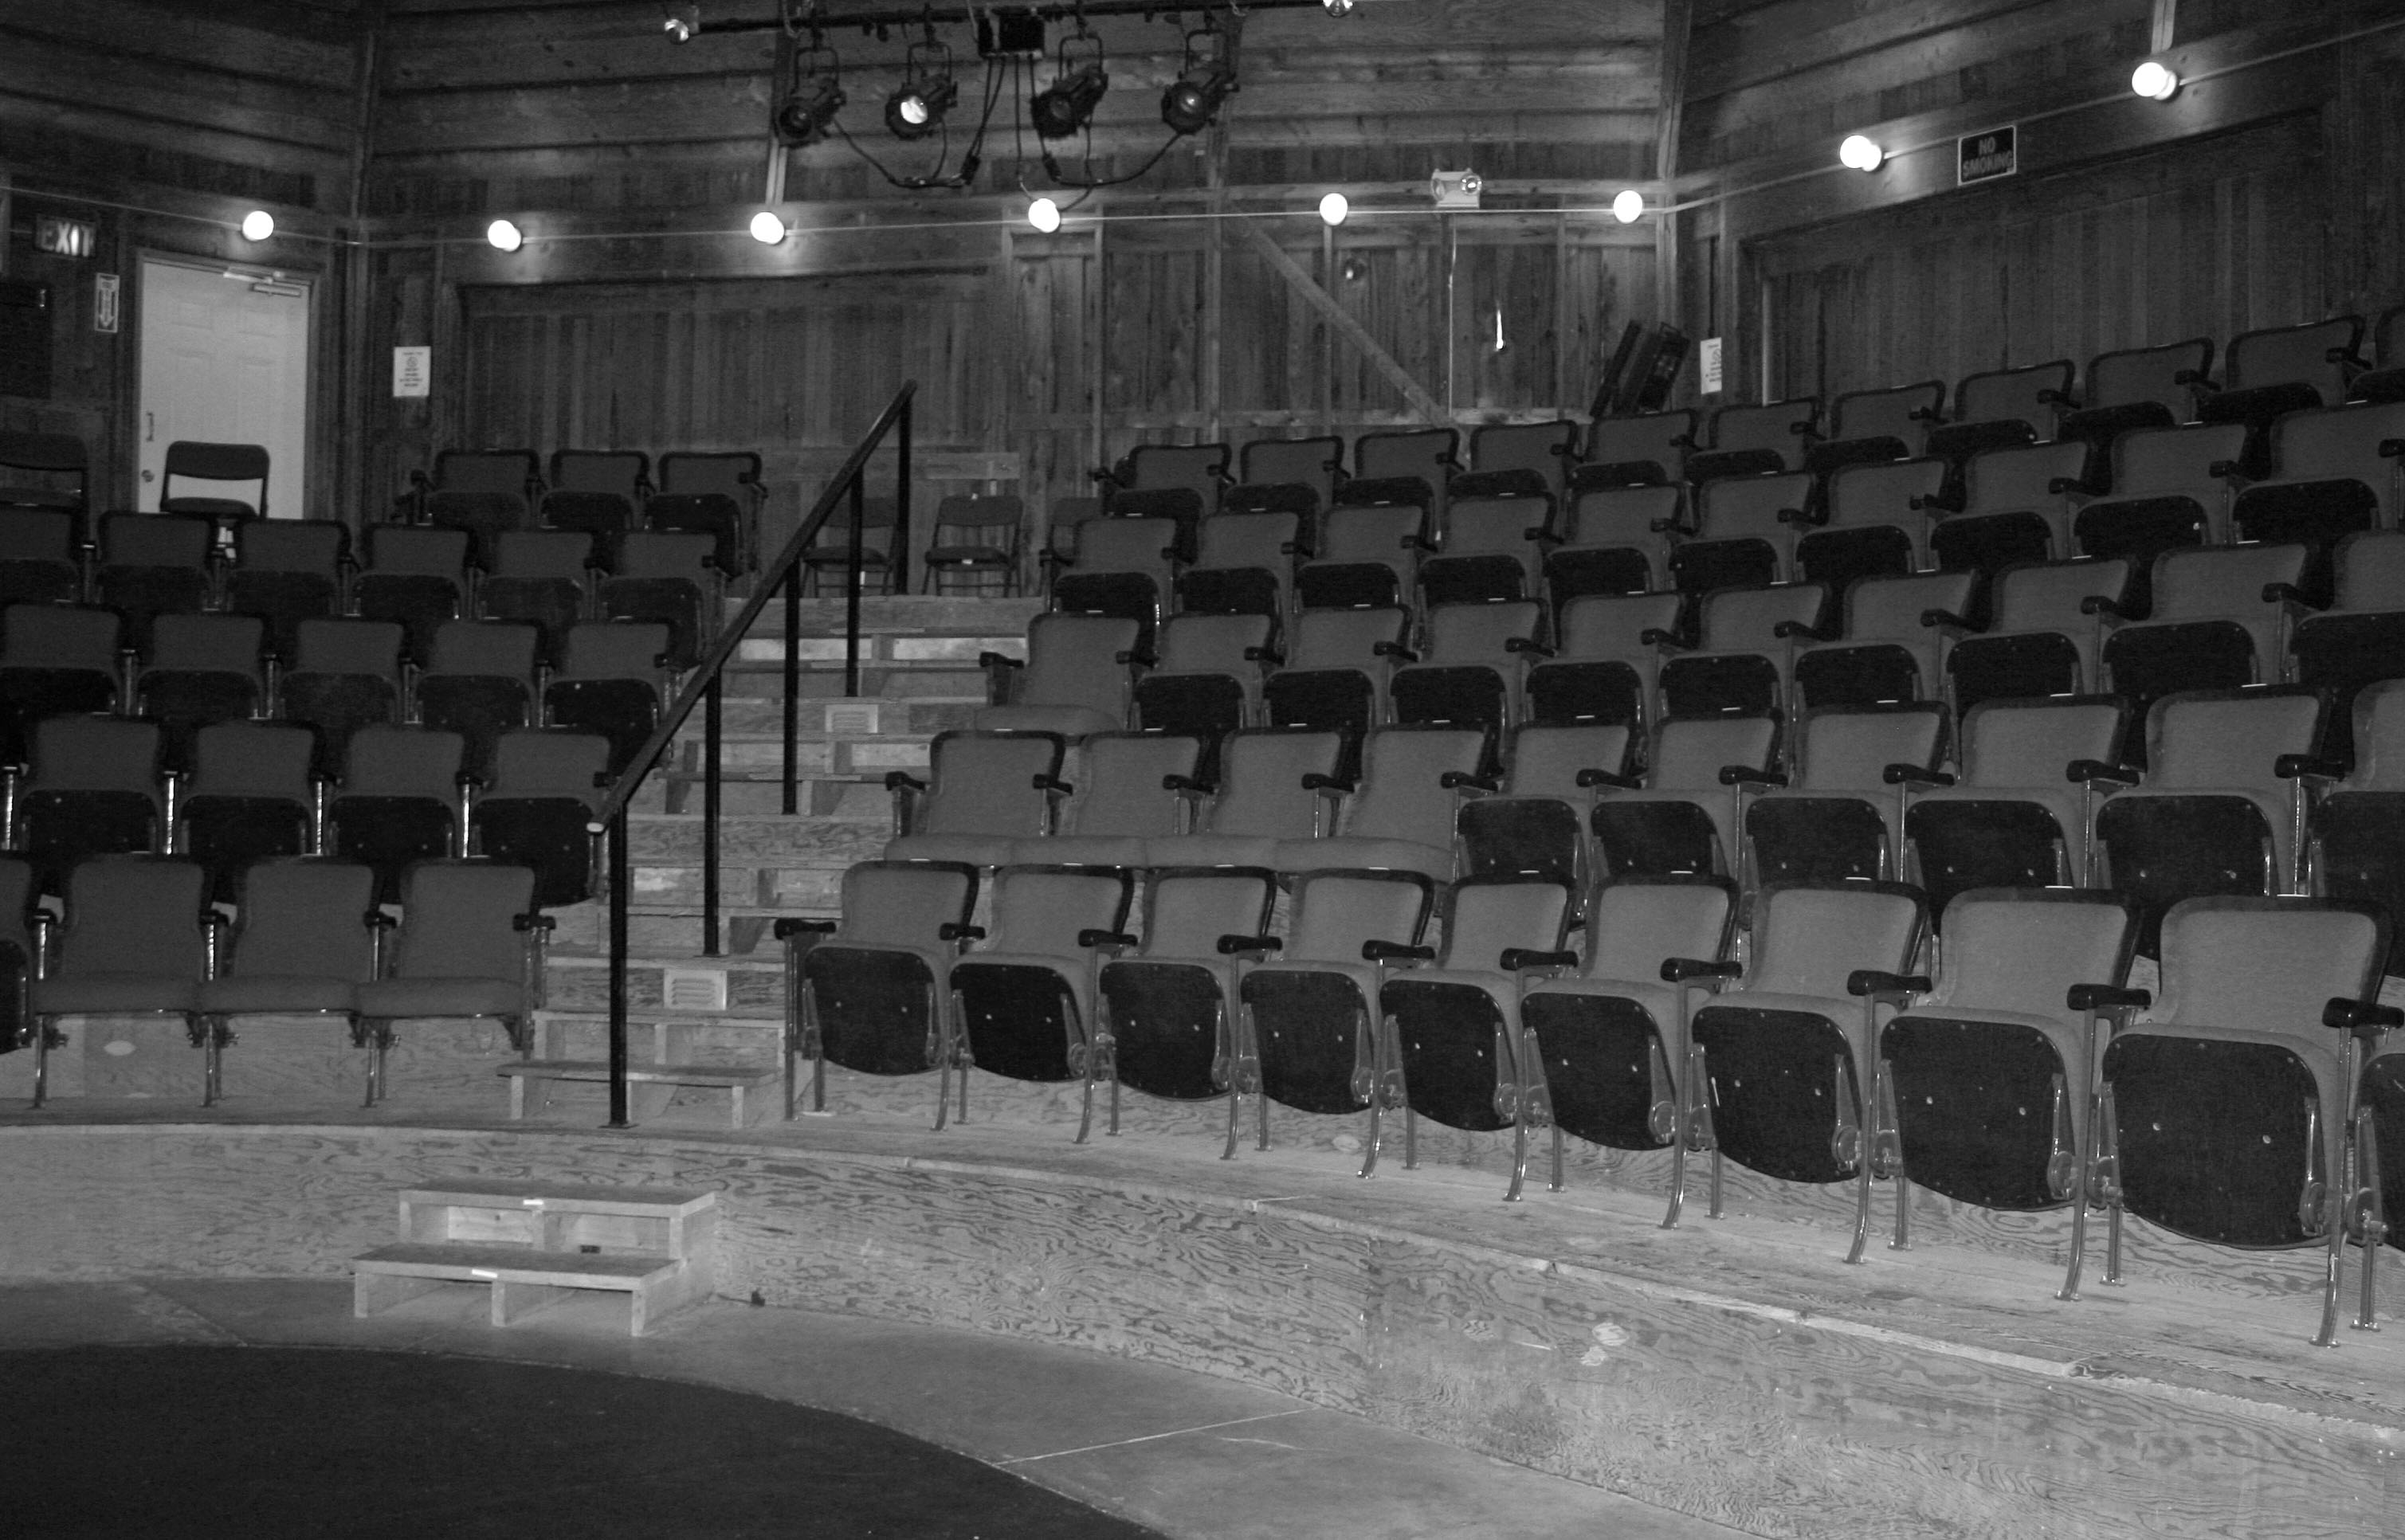 Theatre-Seating (black and white)